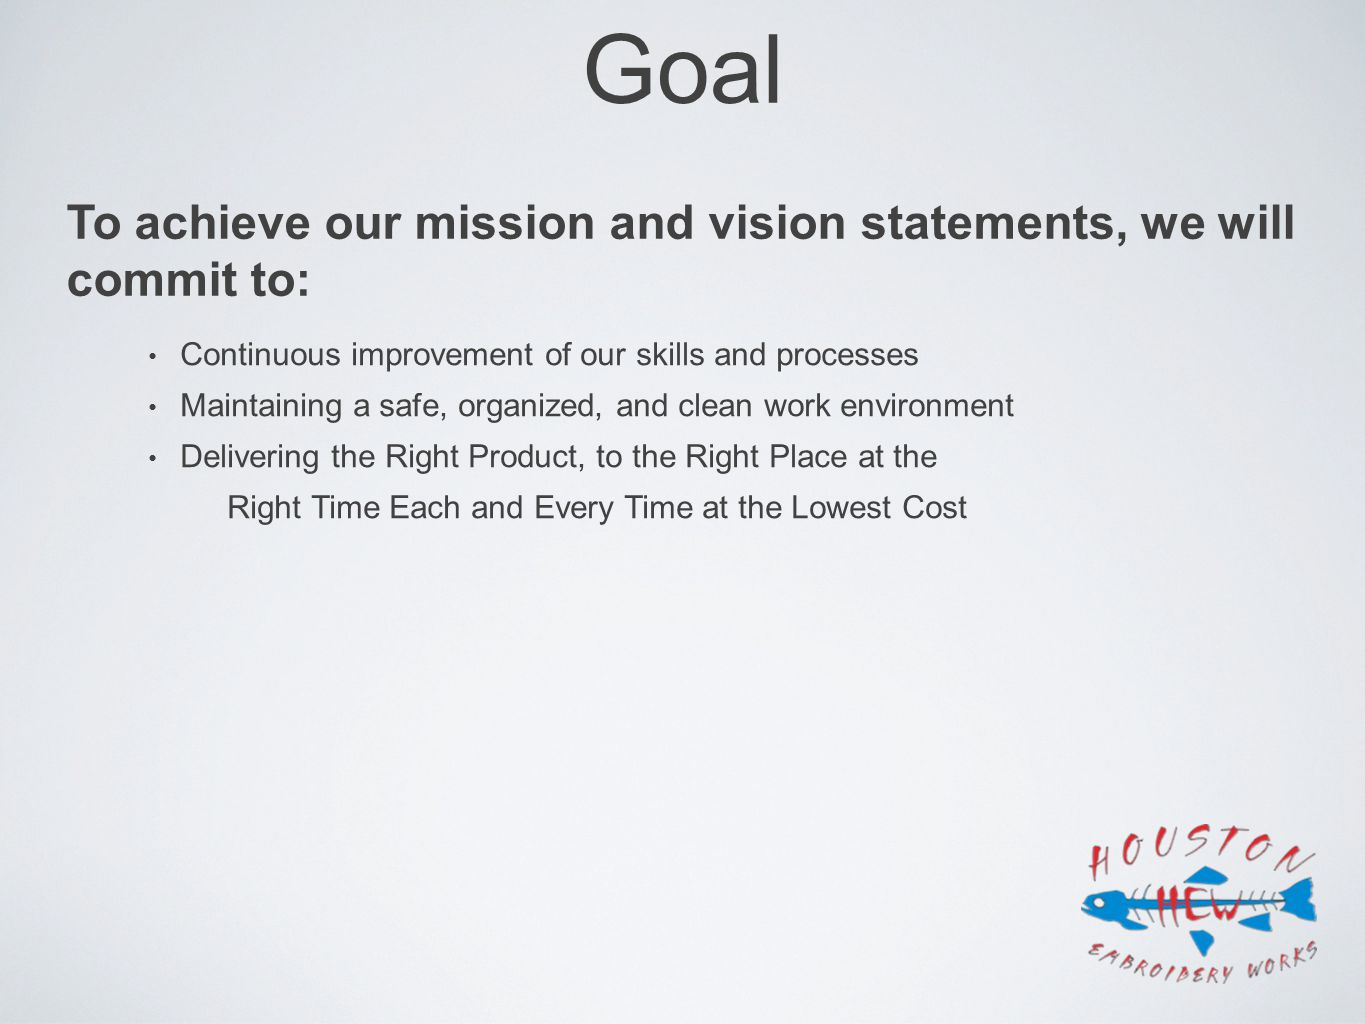 Goal Continuous improvement of our skills and processes Maintaining a safe, organized, and clean work environment Delivering the Right Product, to the